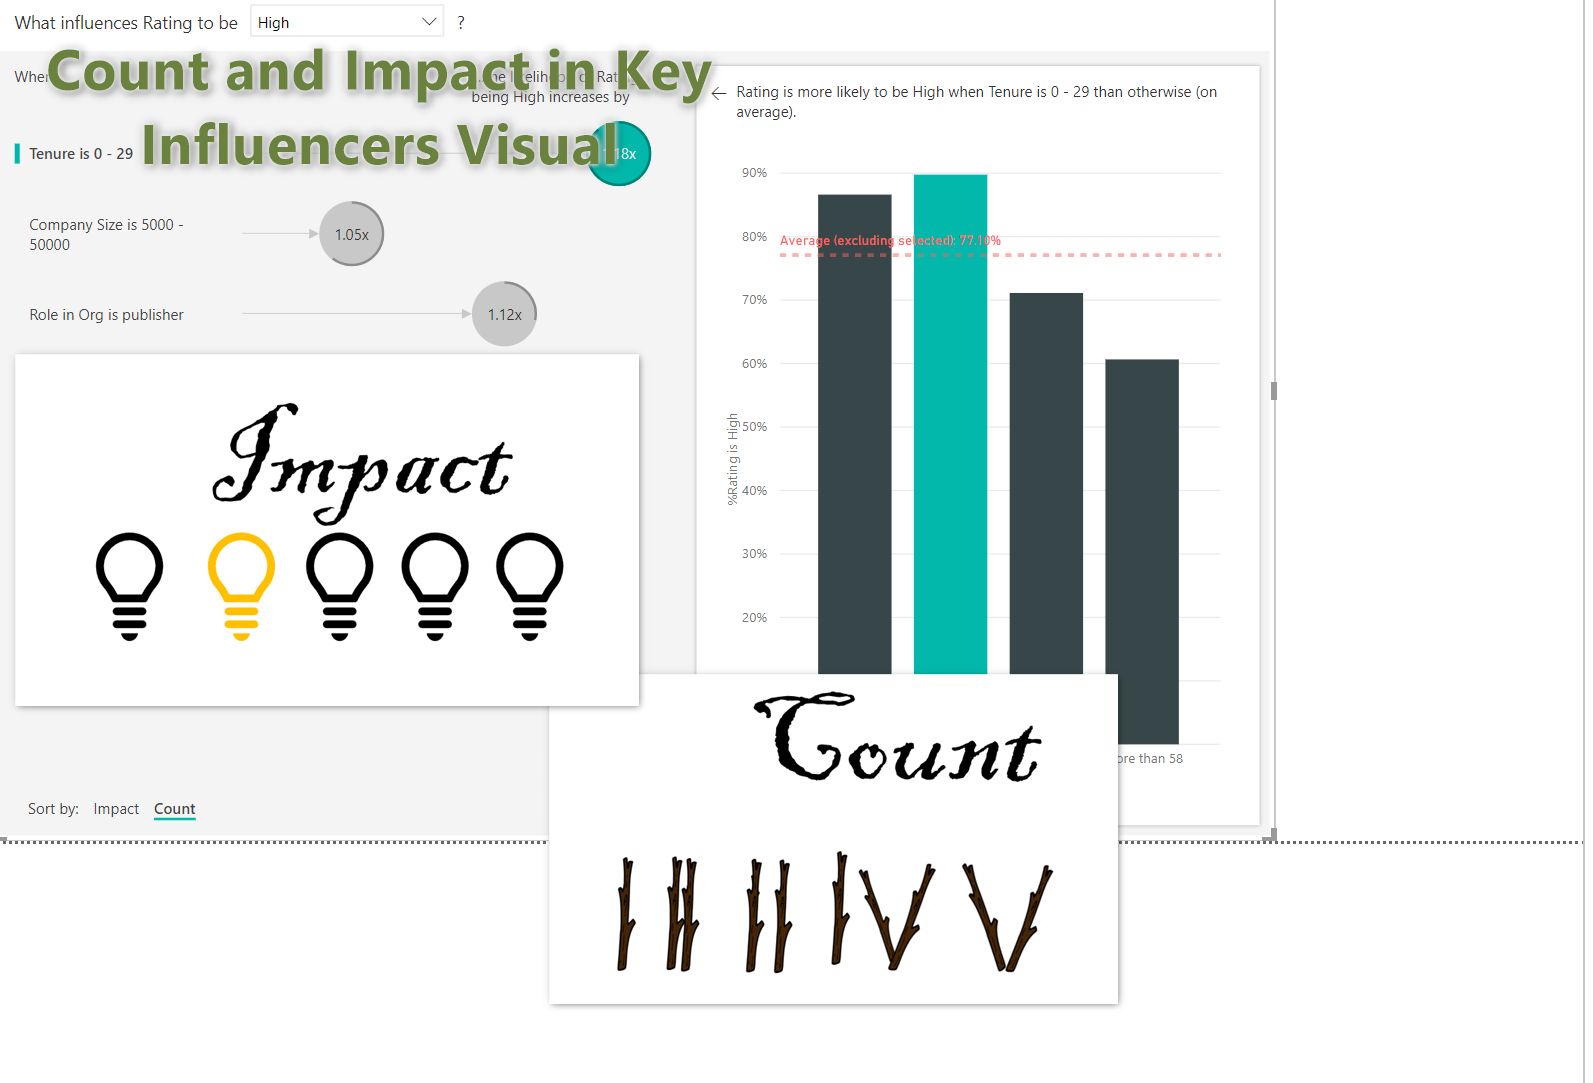 Some of Key Influencers Visual Features – RADACAD